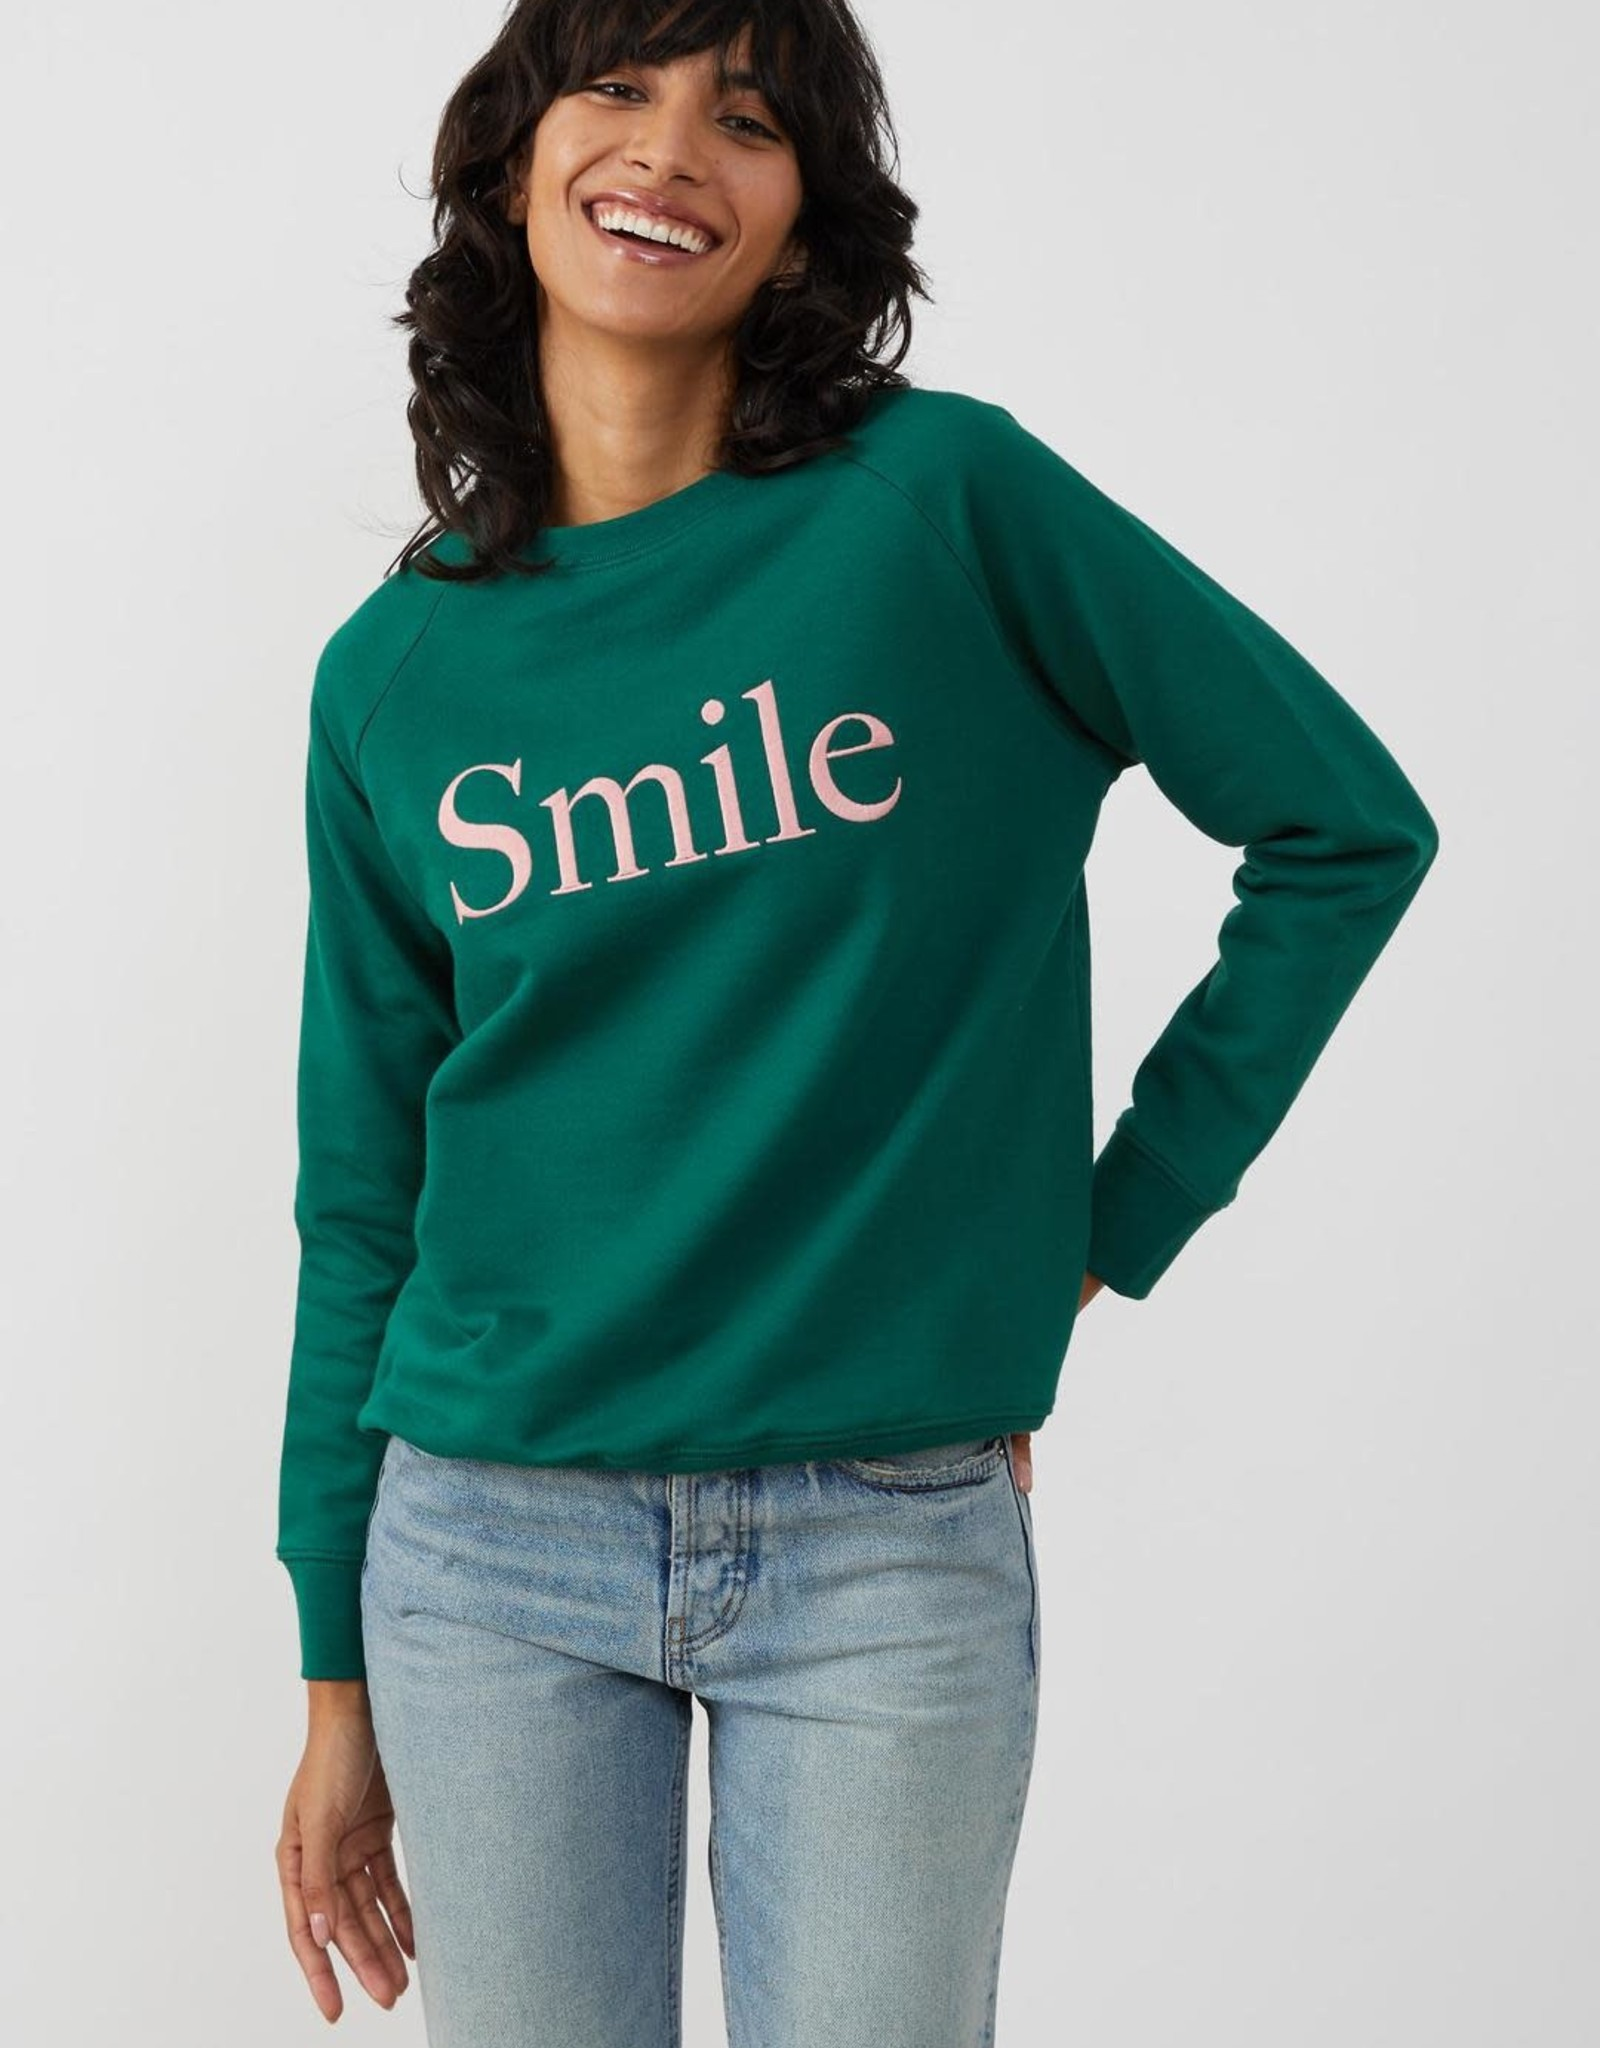 SOUTH PARADE ROCKY FOREST GREEN SMILE